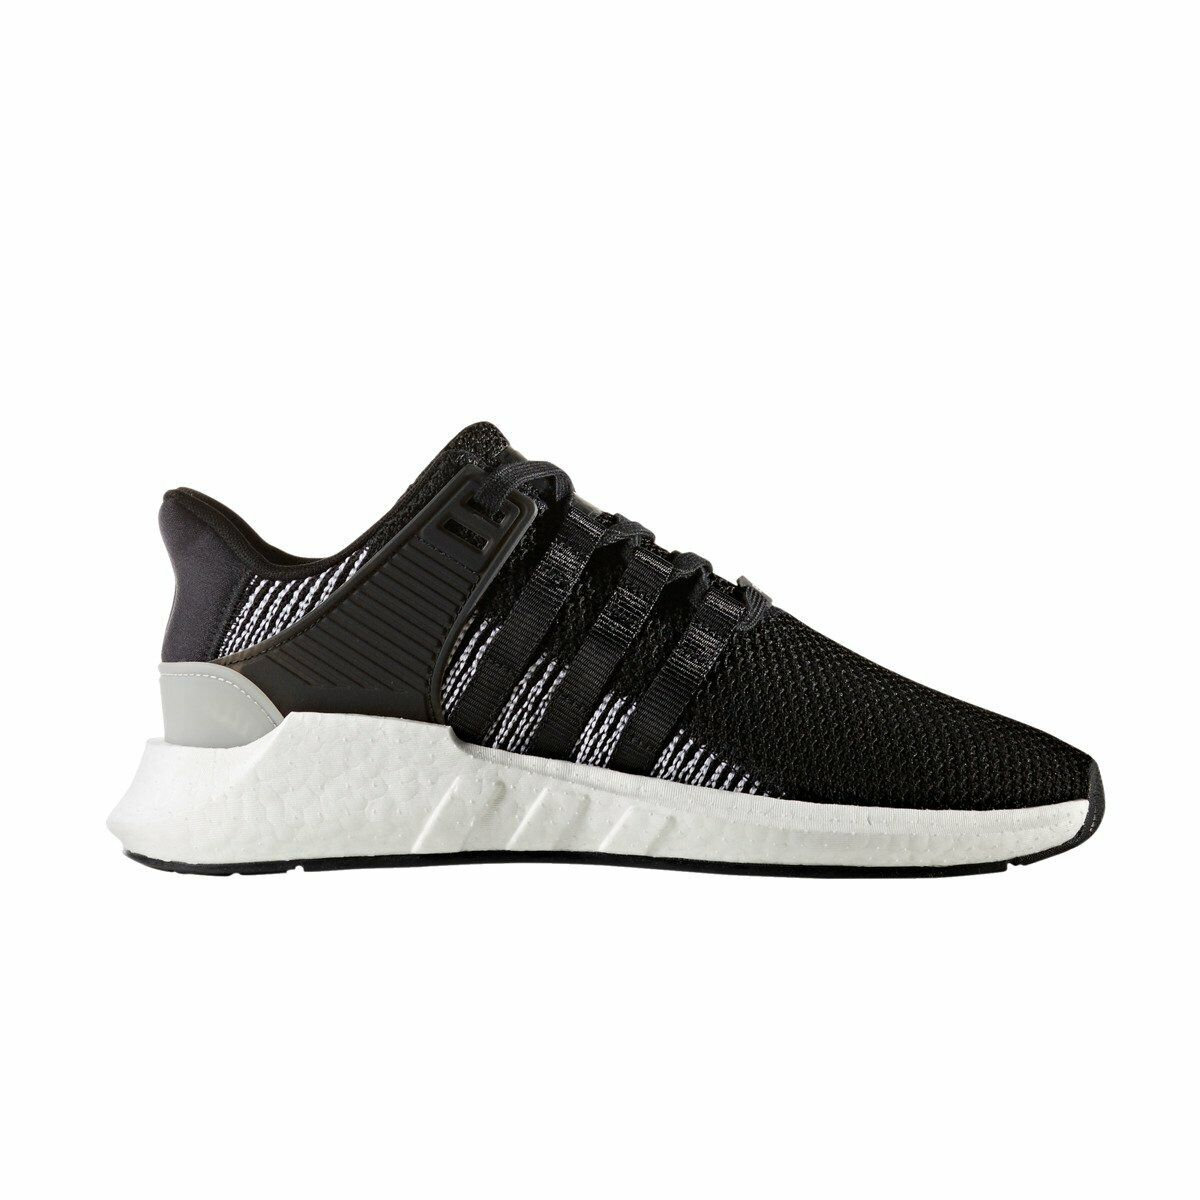 SCARPE ADIDAS ORIGINALS UOMO EQT SUPPORT 9317 BY9509 NERO BIANCO BLACK ORIGINALI